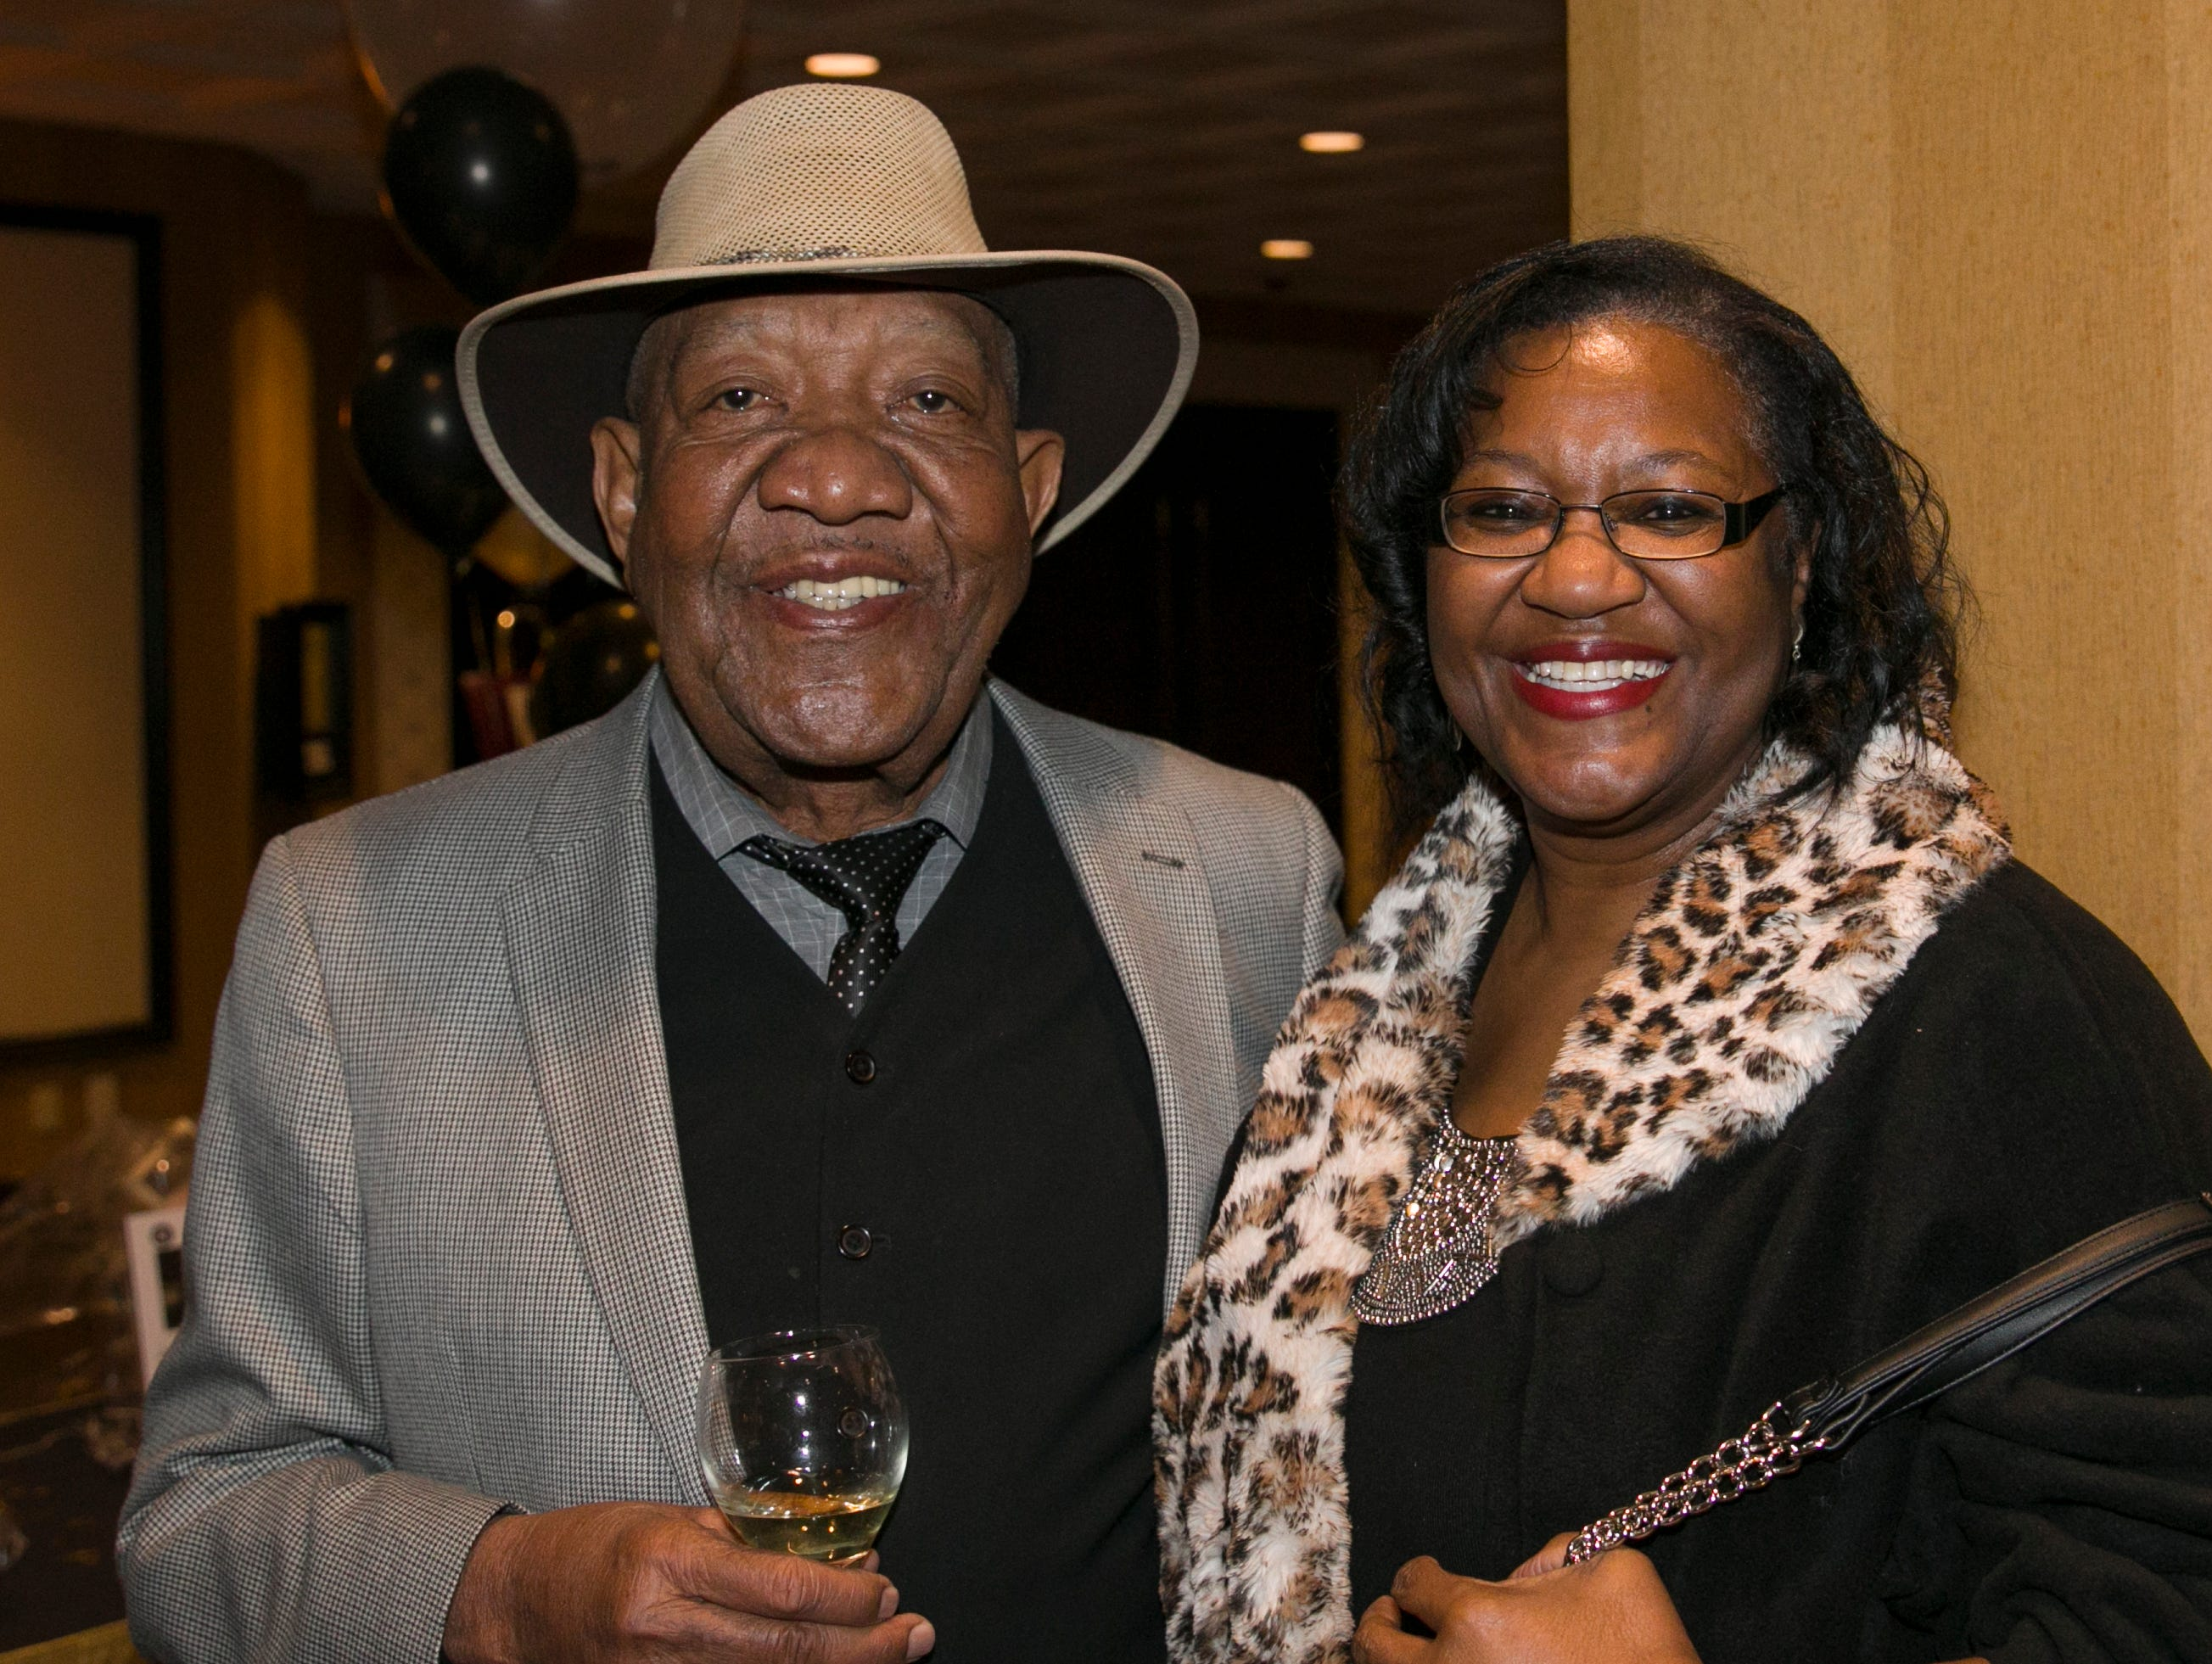 Frank Boyd and Linda Hill during the 31st Annual Martin Luther King, Jr. Birthday Celebration Dinner at the Atlantis Casino Resort Spa on Monday, January 21, 2109 in Reno, Nevada.